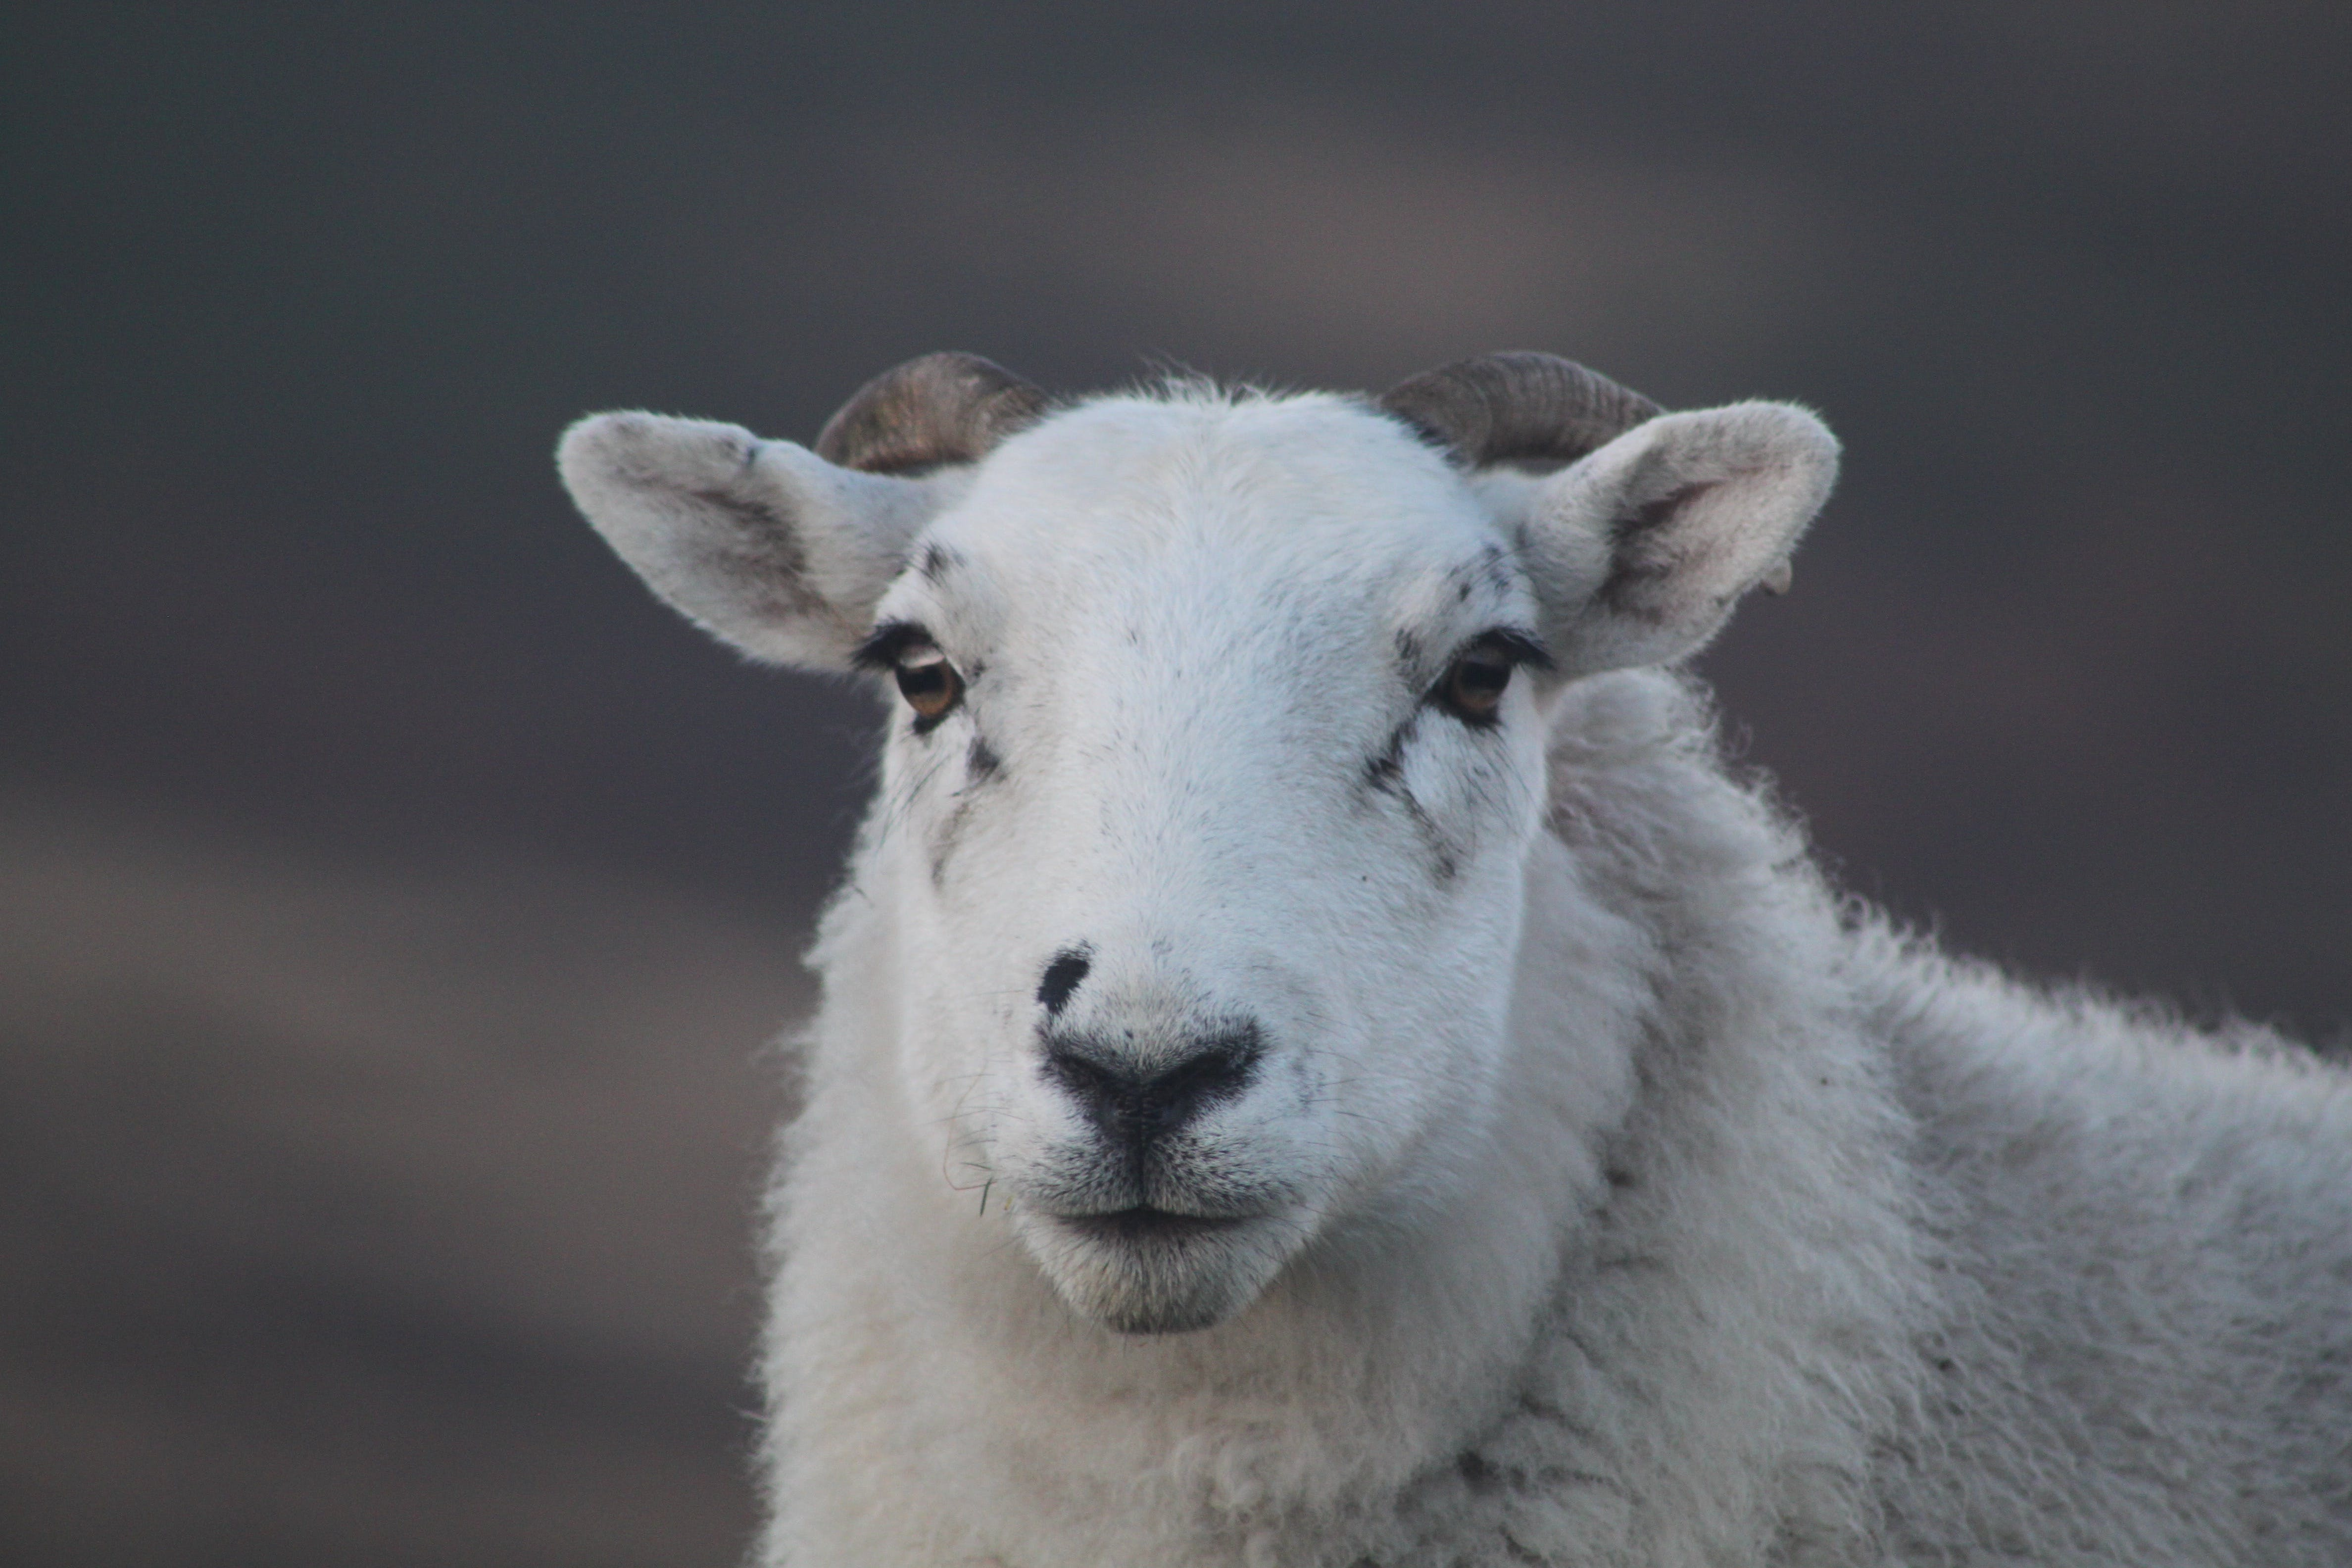 Close-up Photography of White Ram